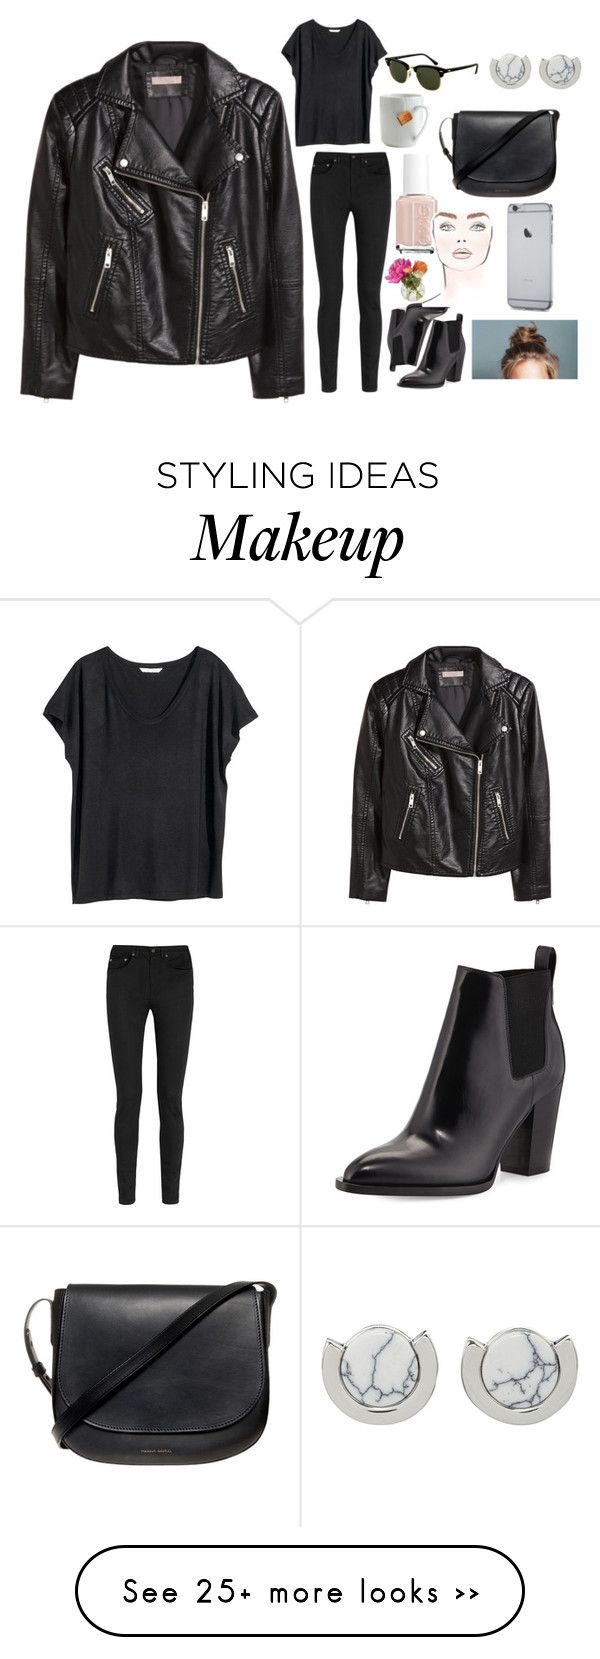 """""""You wear so much black"""" by barbtaeger on Polyvore featuring H&M, Yves Saint Laurent, Rayban, Vince, le mouton noir & co., Cultural Intrigue, Essie, Mansur Gavriel and Whistles"""